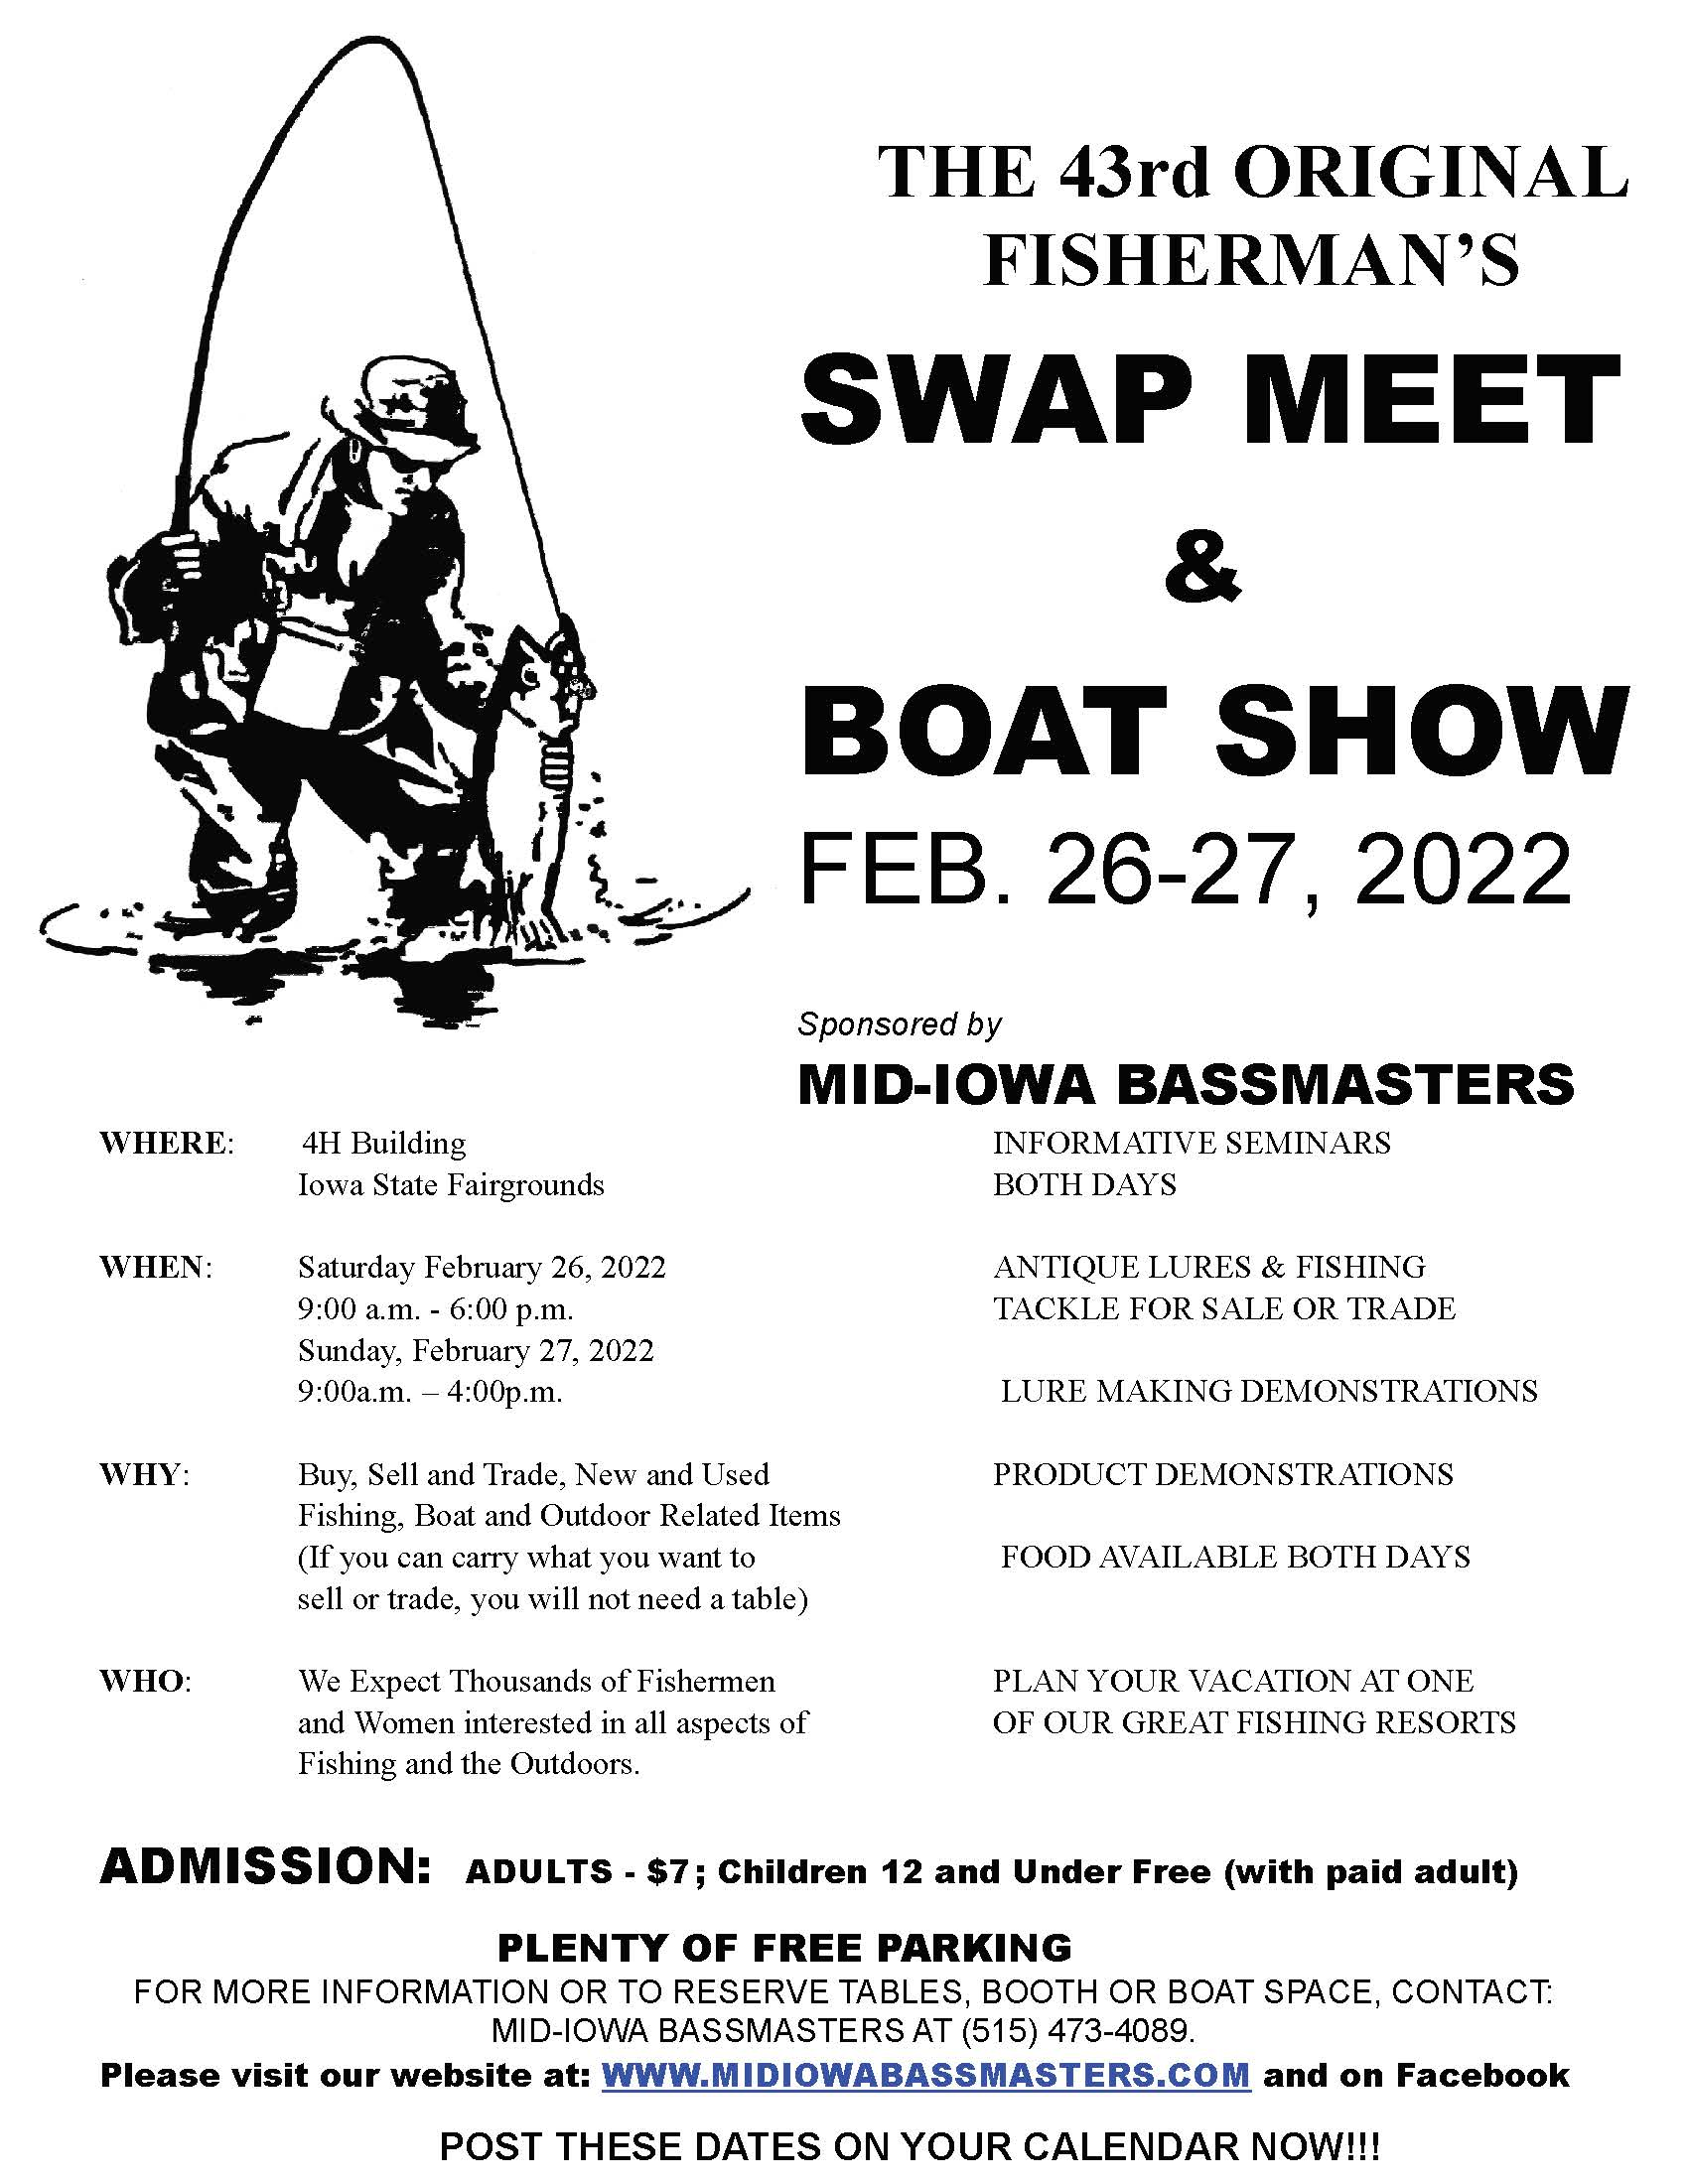 The 2022 Swap Meet will be held on February 26th & 27th, 2022. Here is some info for this year's swap meet; info for next year will be posted as it becomes available.